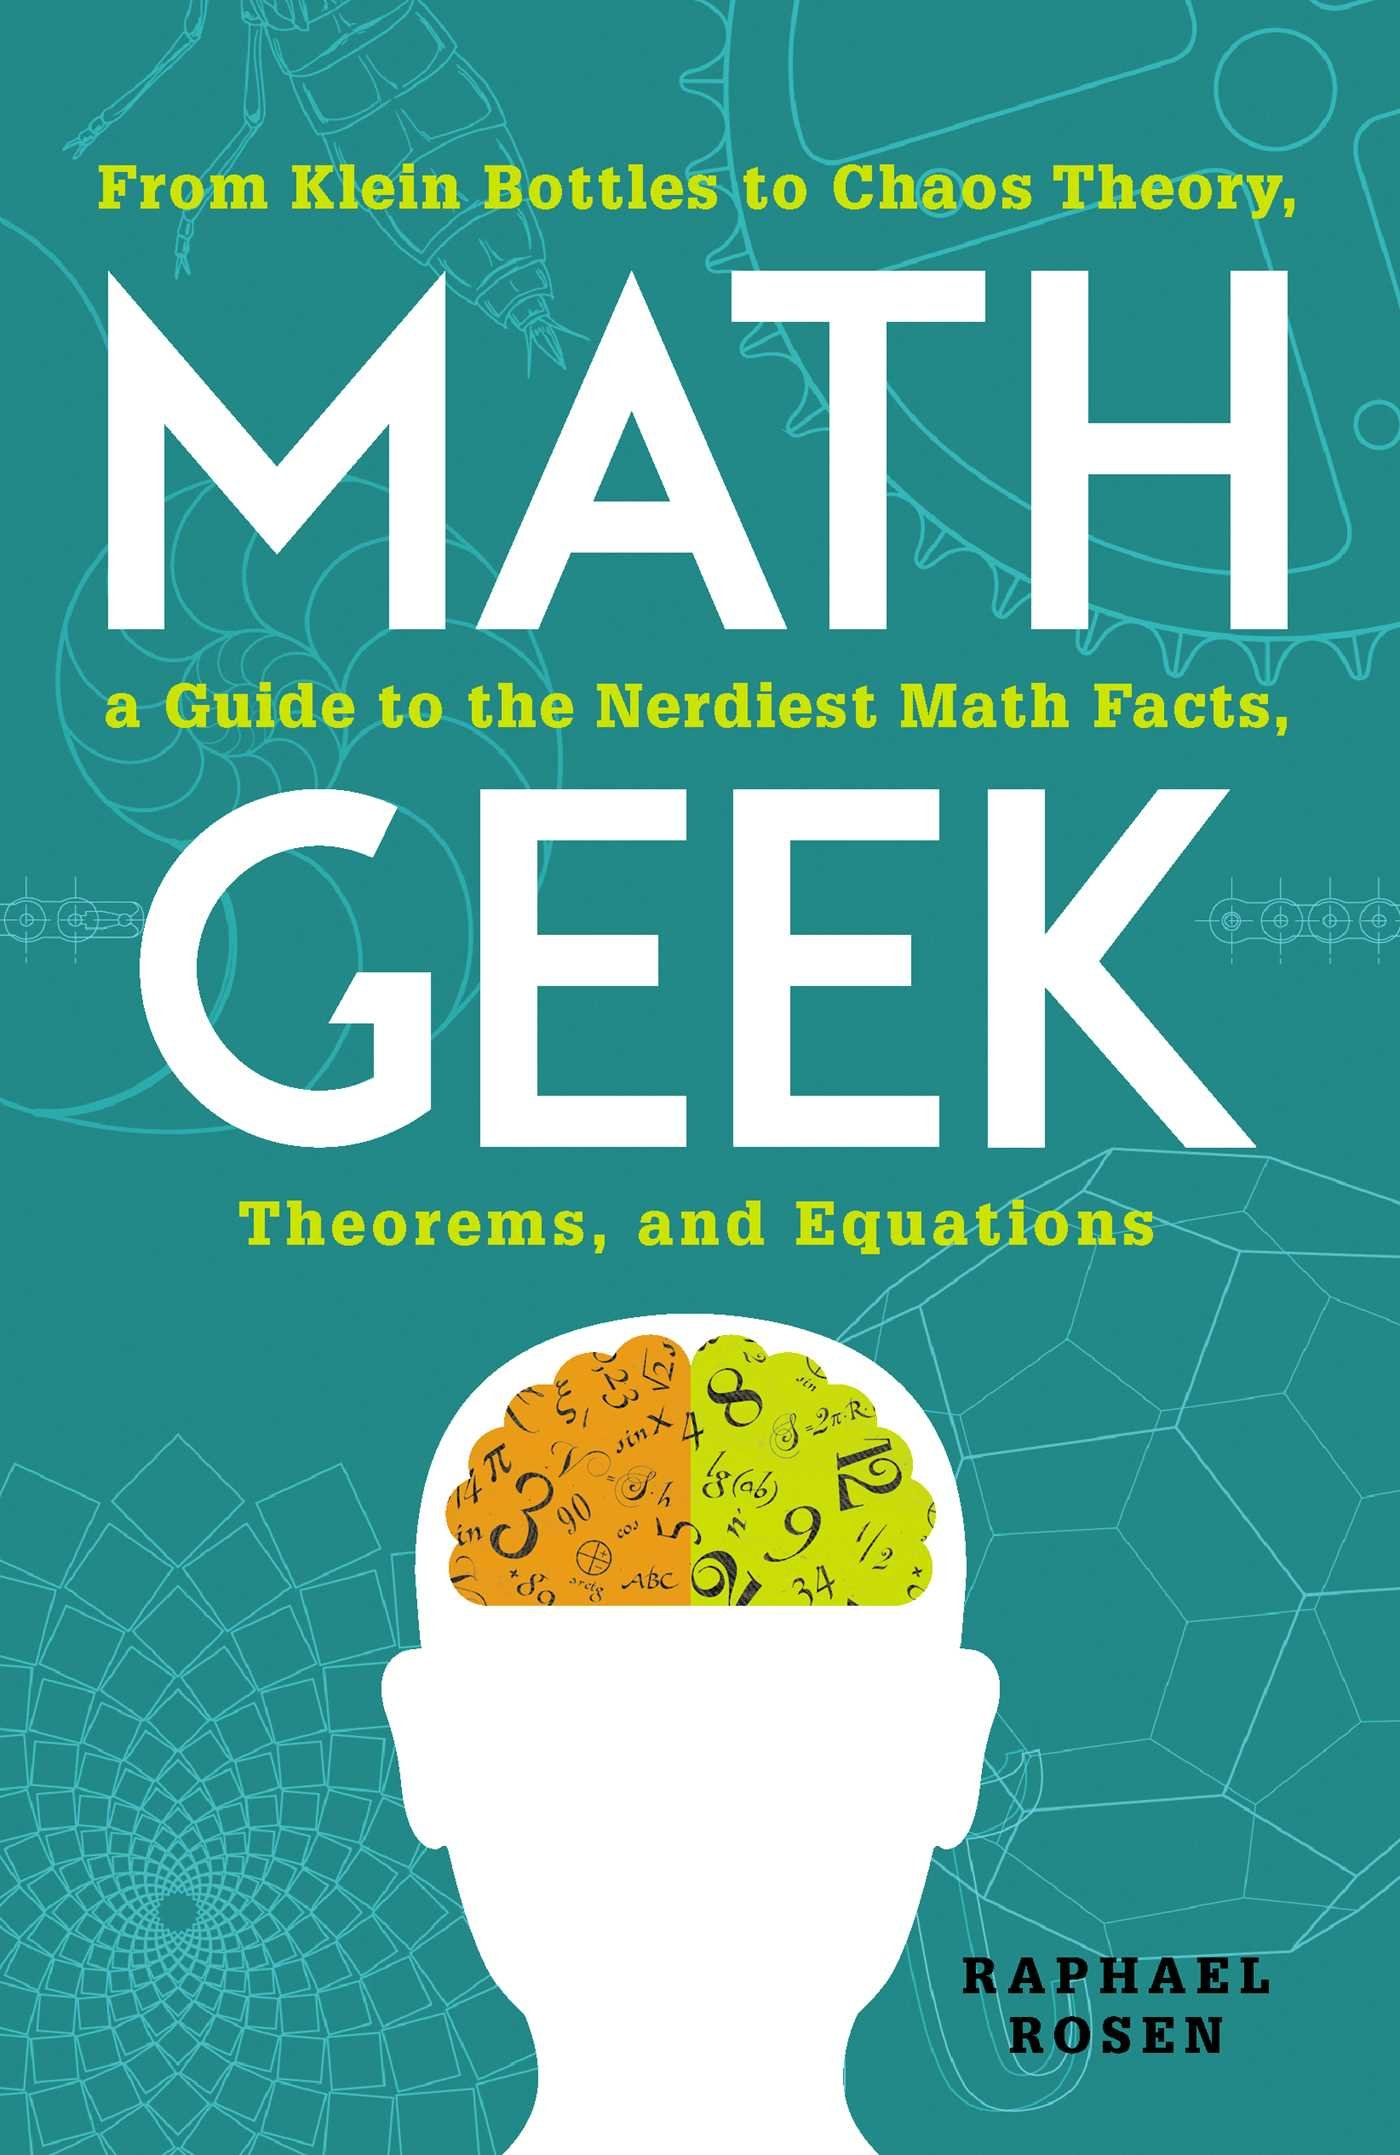 Math Geek: From Klein Bottles to Chaos Theory, a Guide to